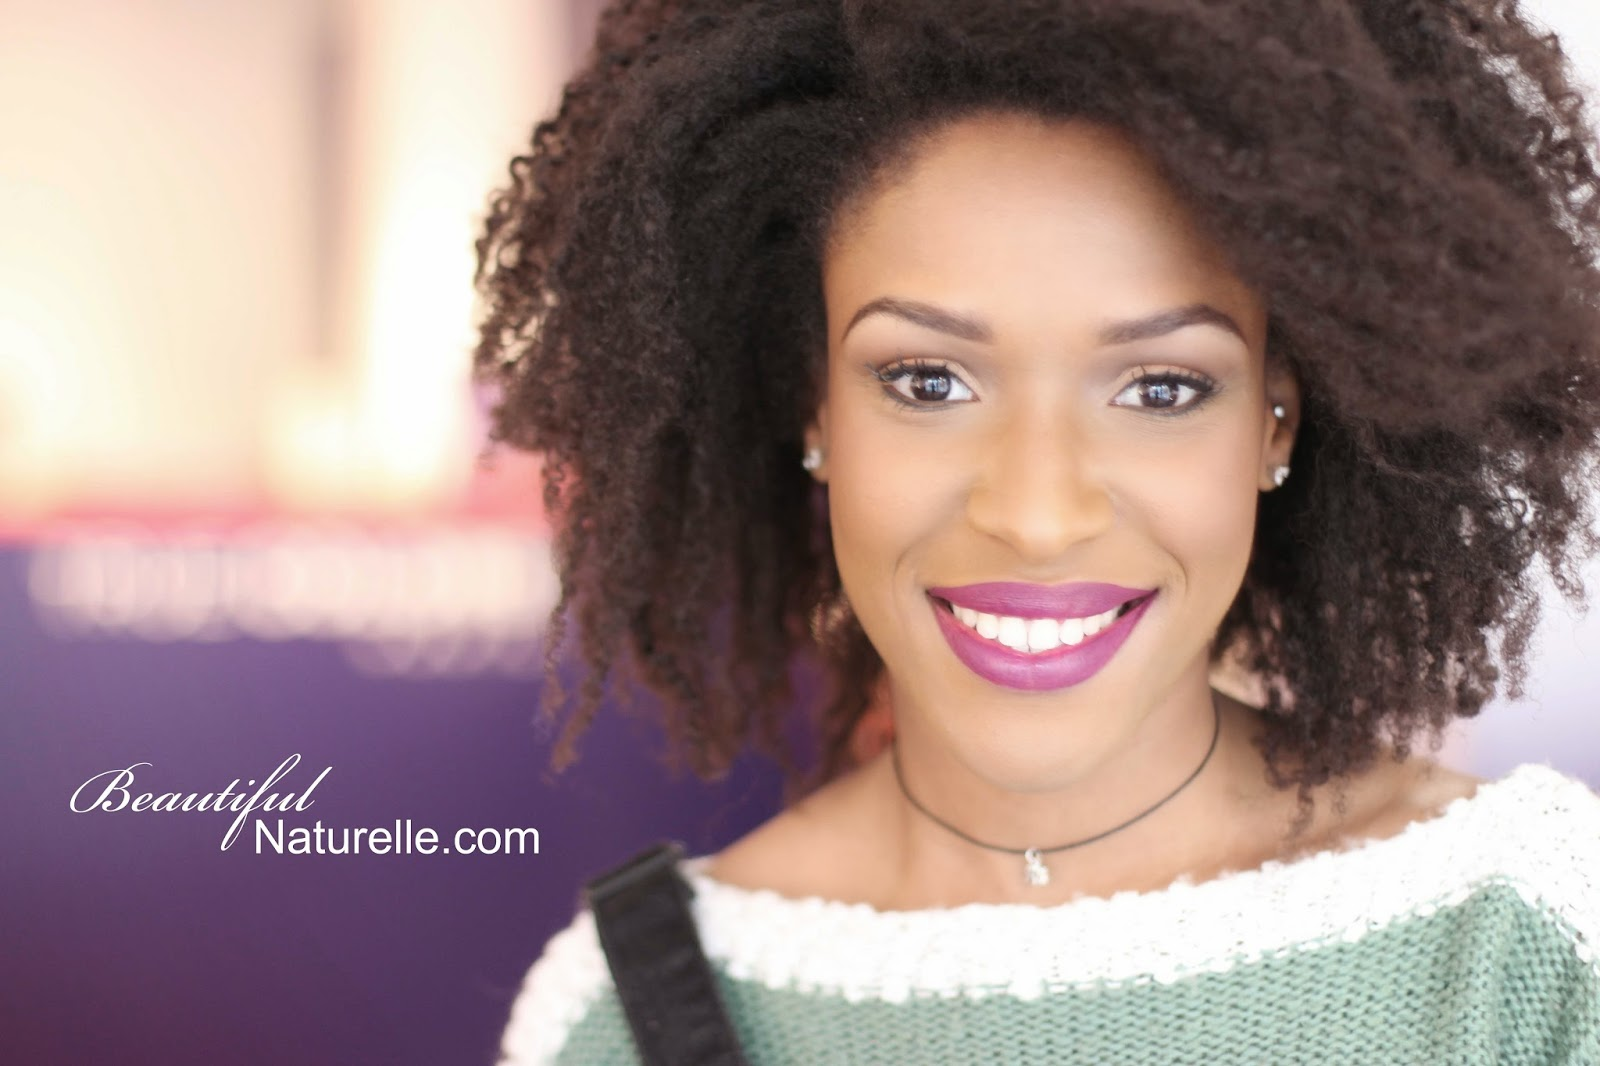 boutique true colors 46 rue du faubourg saint martin paris 10me - True Colors Maquillage